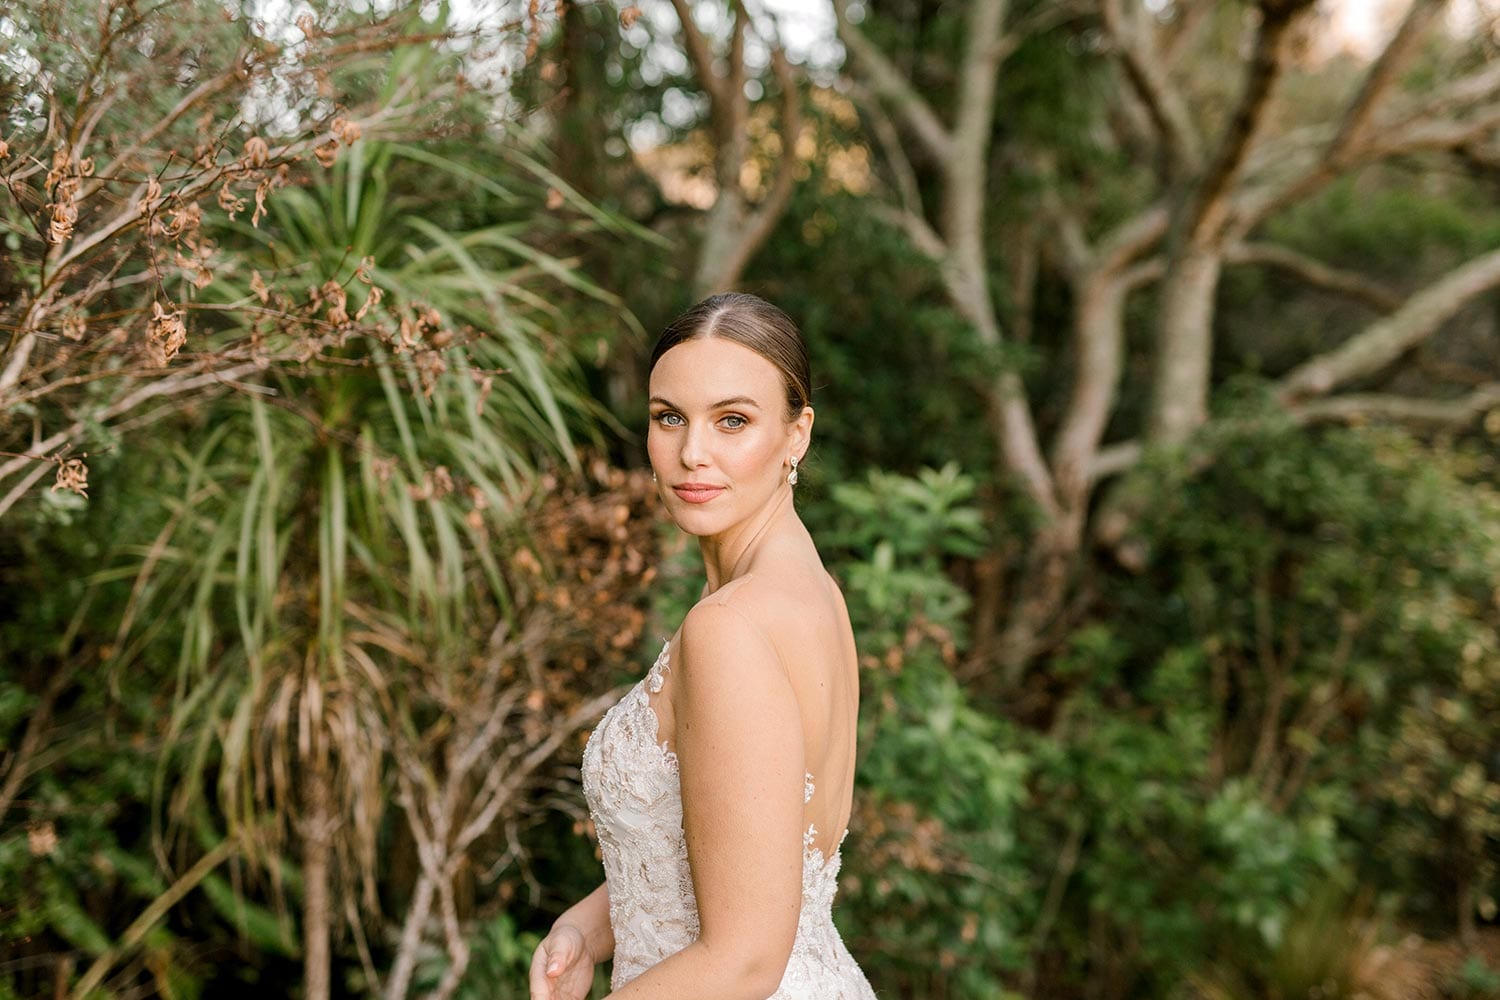 Samantha Wedding Dress from Vinka Design. This beautiful wedding dress has a nude sheer illusion strapless neckline made from fine Italian tulle. Low sheer back & structured bodice, & soft crepe train. Detail of bodice from the side. Photographed in Landscaped garden.